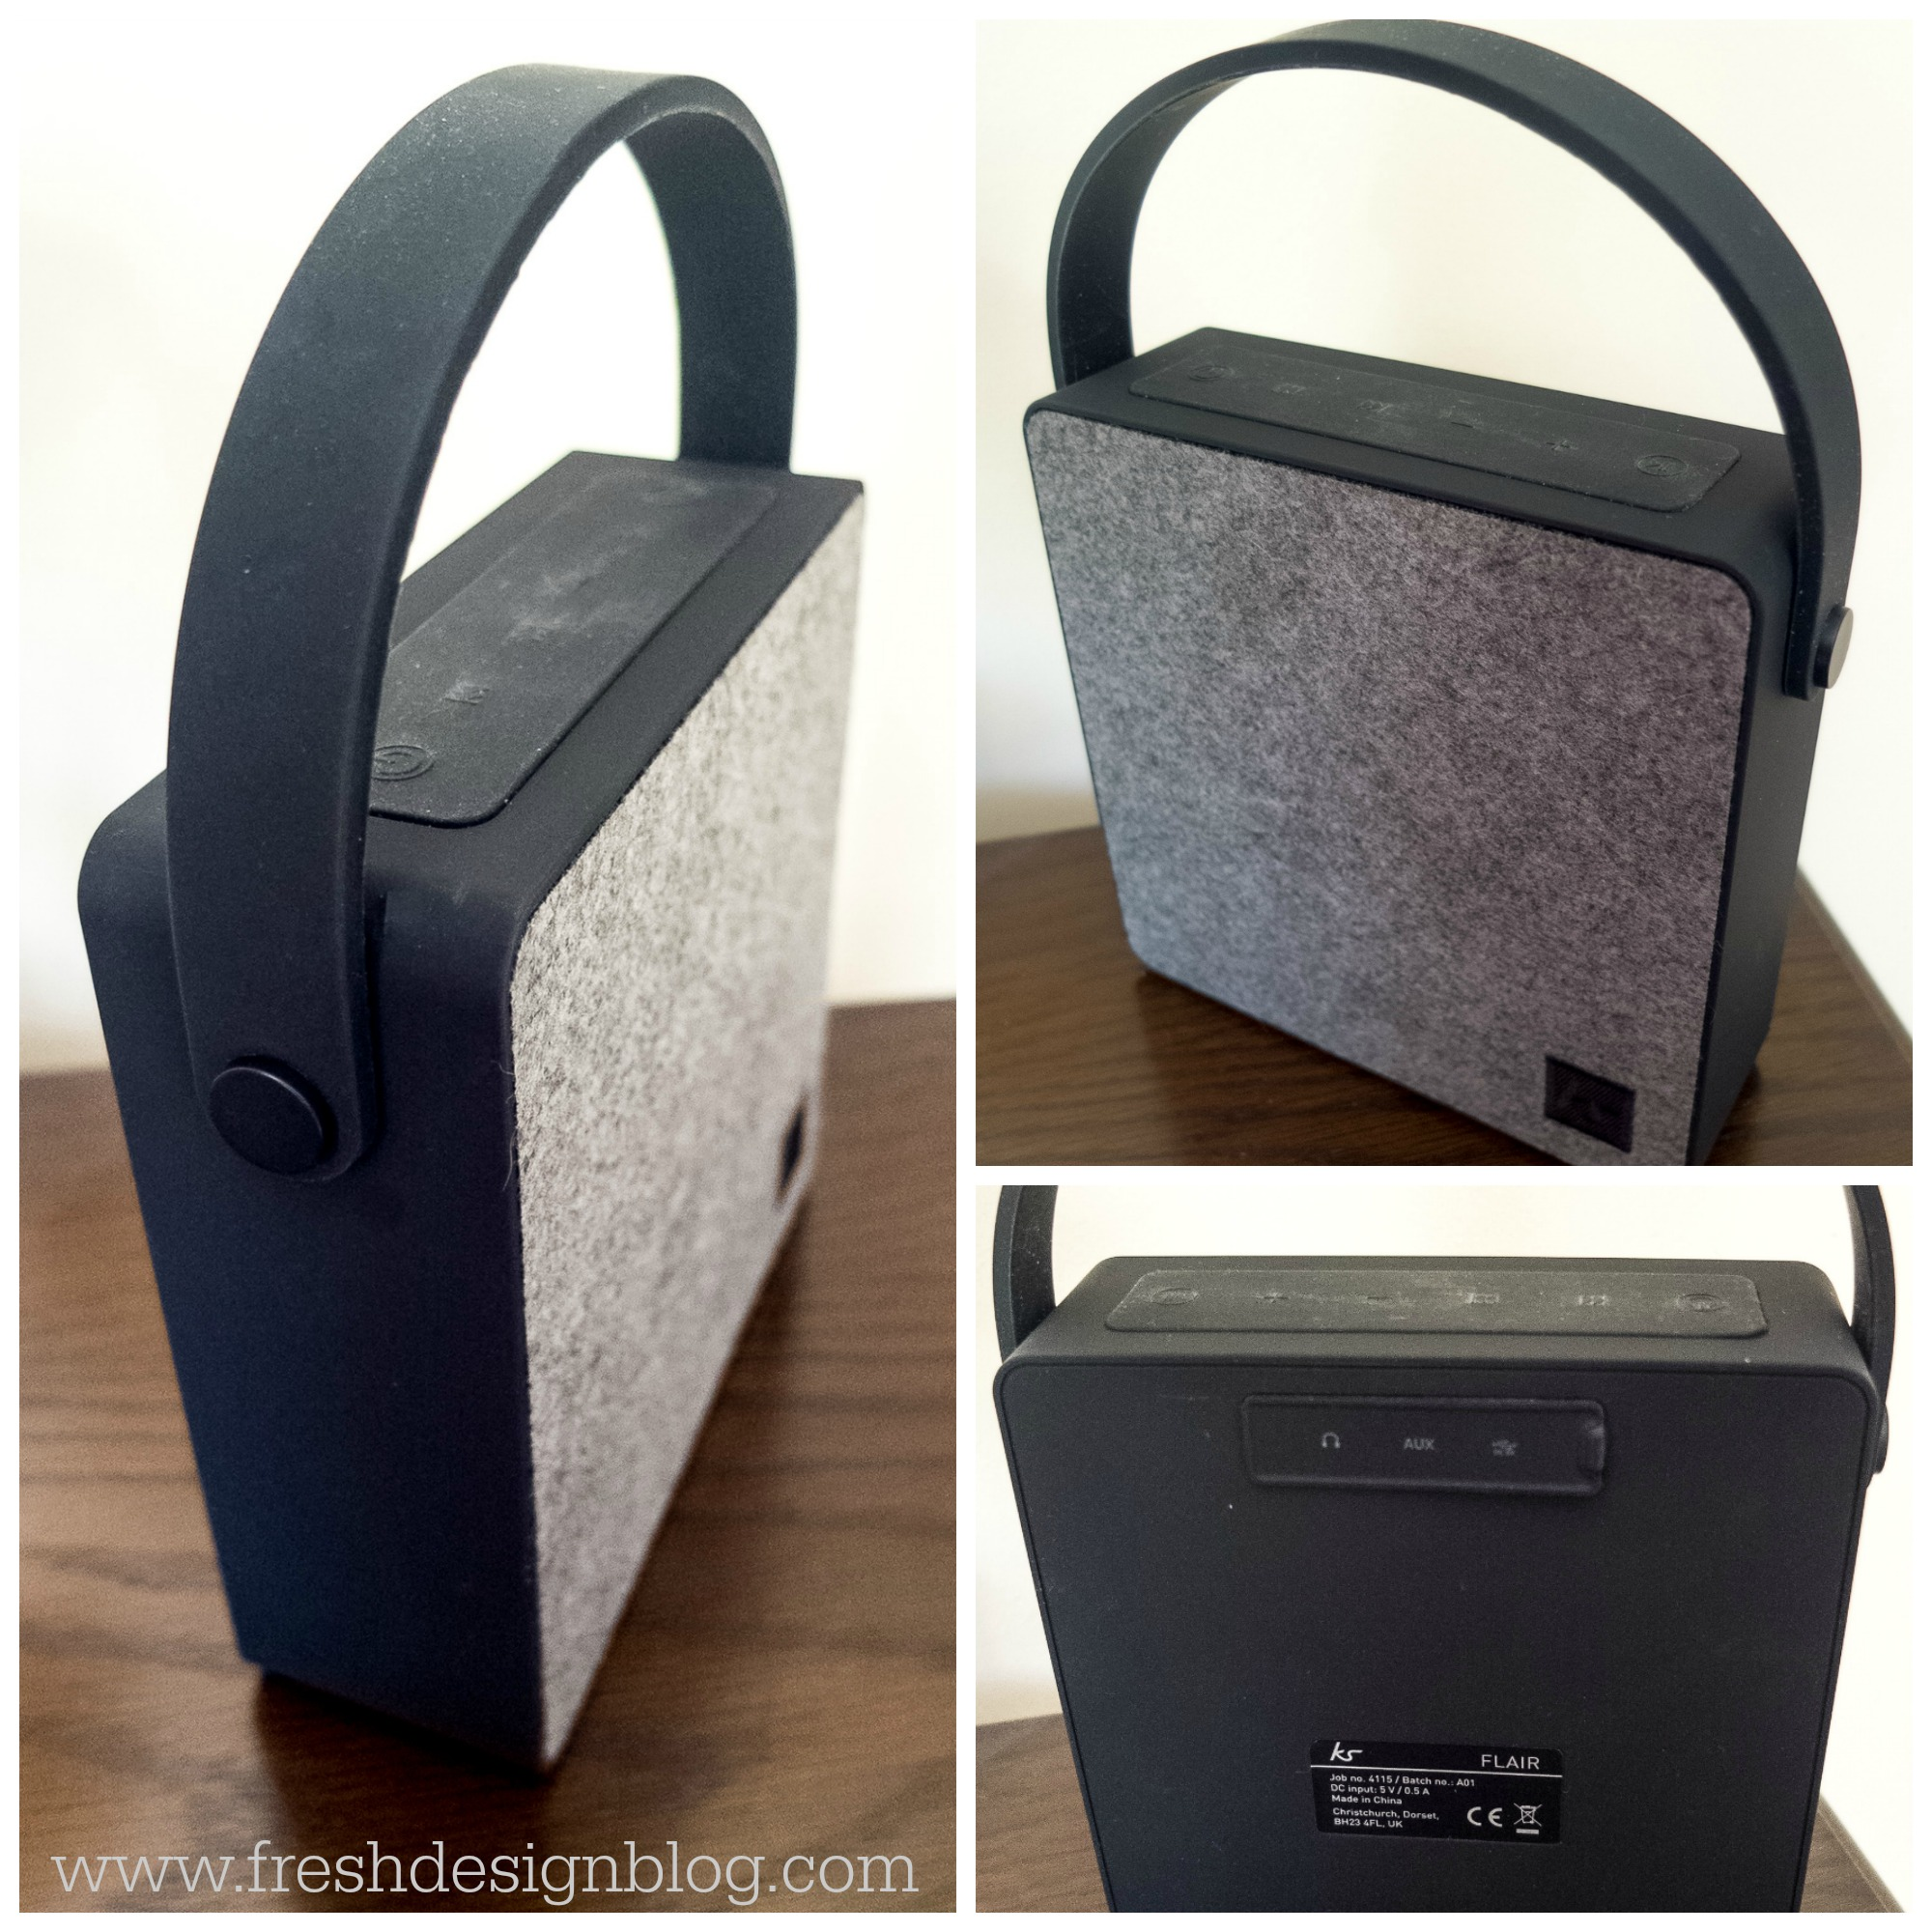 Stylish And Functional Flair Bluetooth Speaker By Kitsound Fresh Design Blog